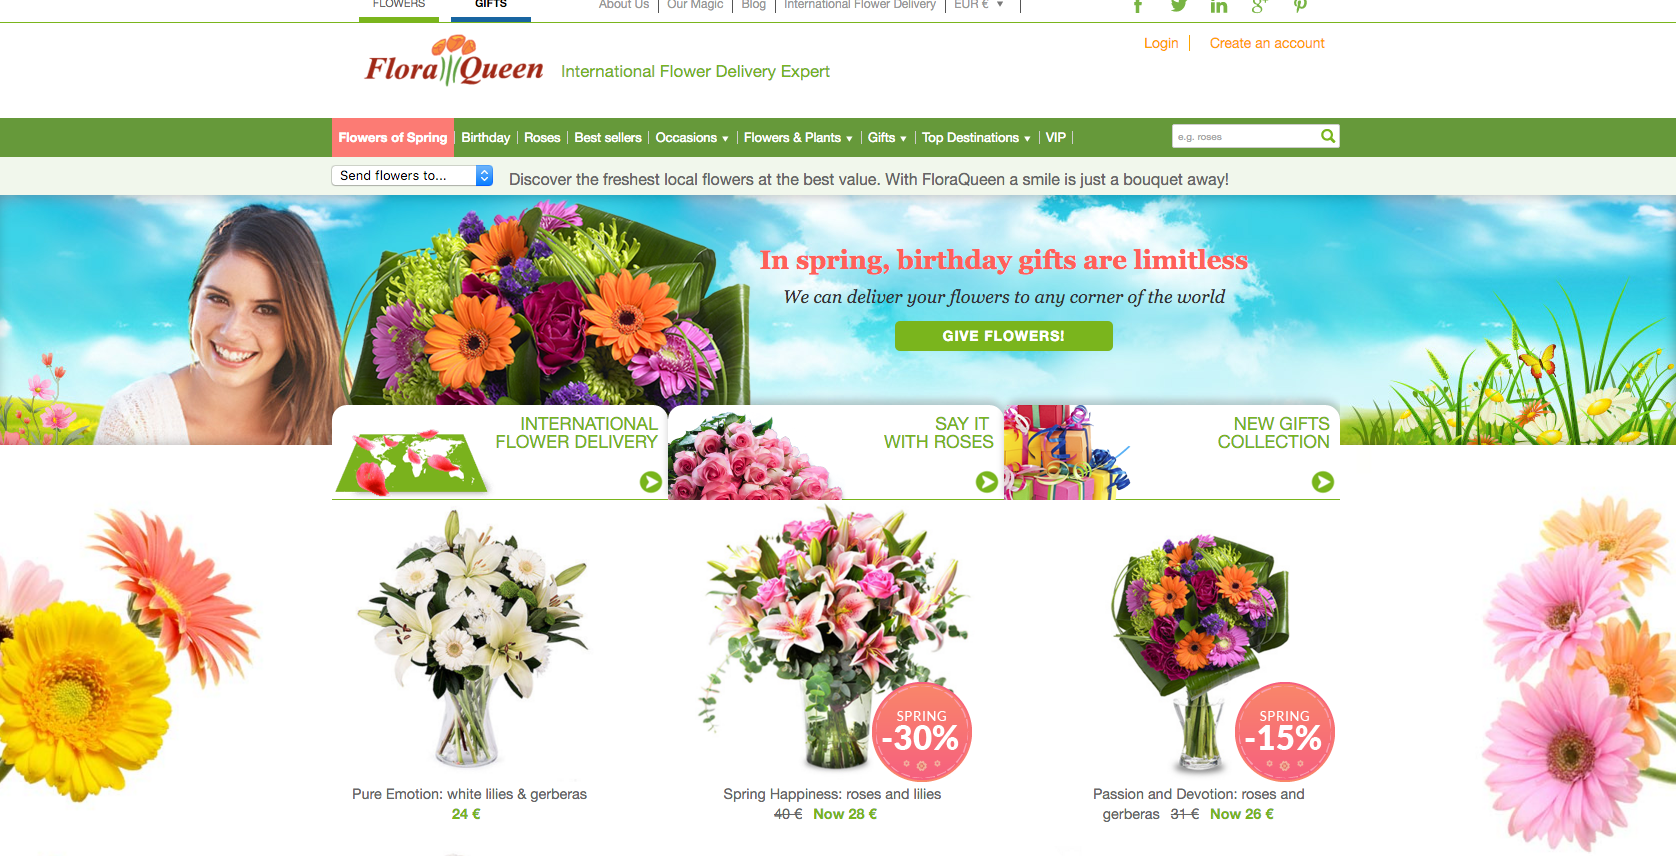 FloraQueen Website